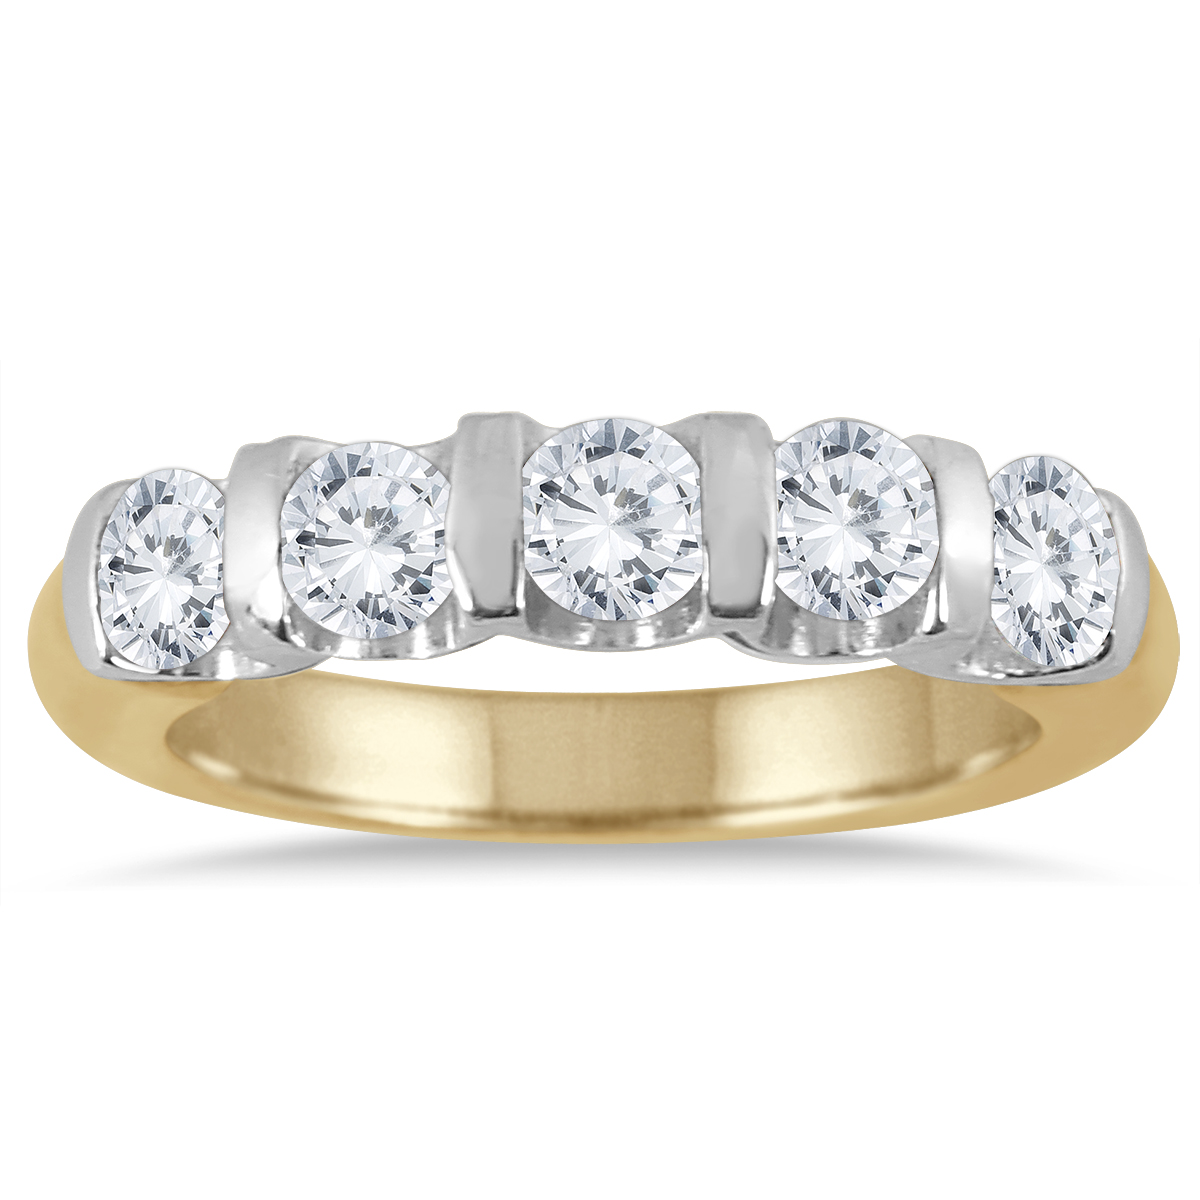 1 Carat Five Stone Diamond Wedding Band in 14K Two Tone Gold thumbnail